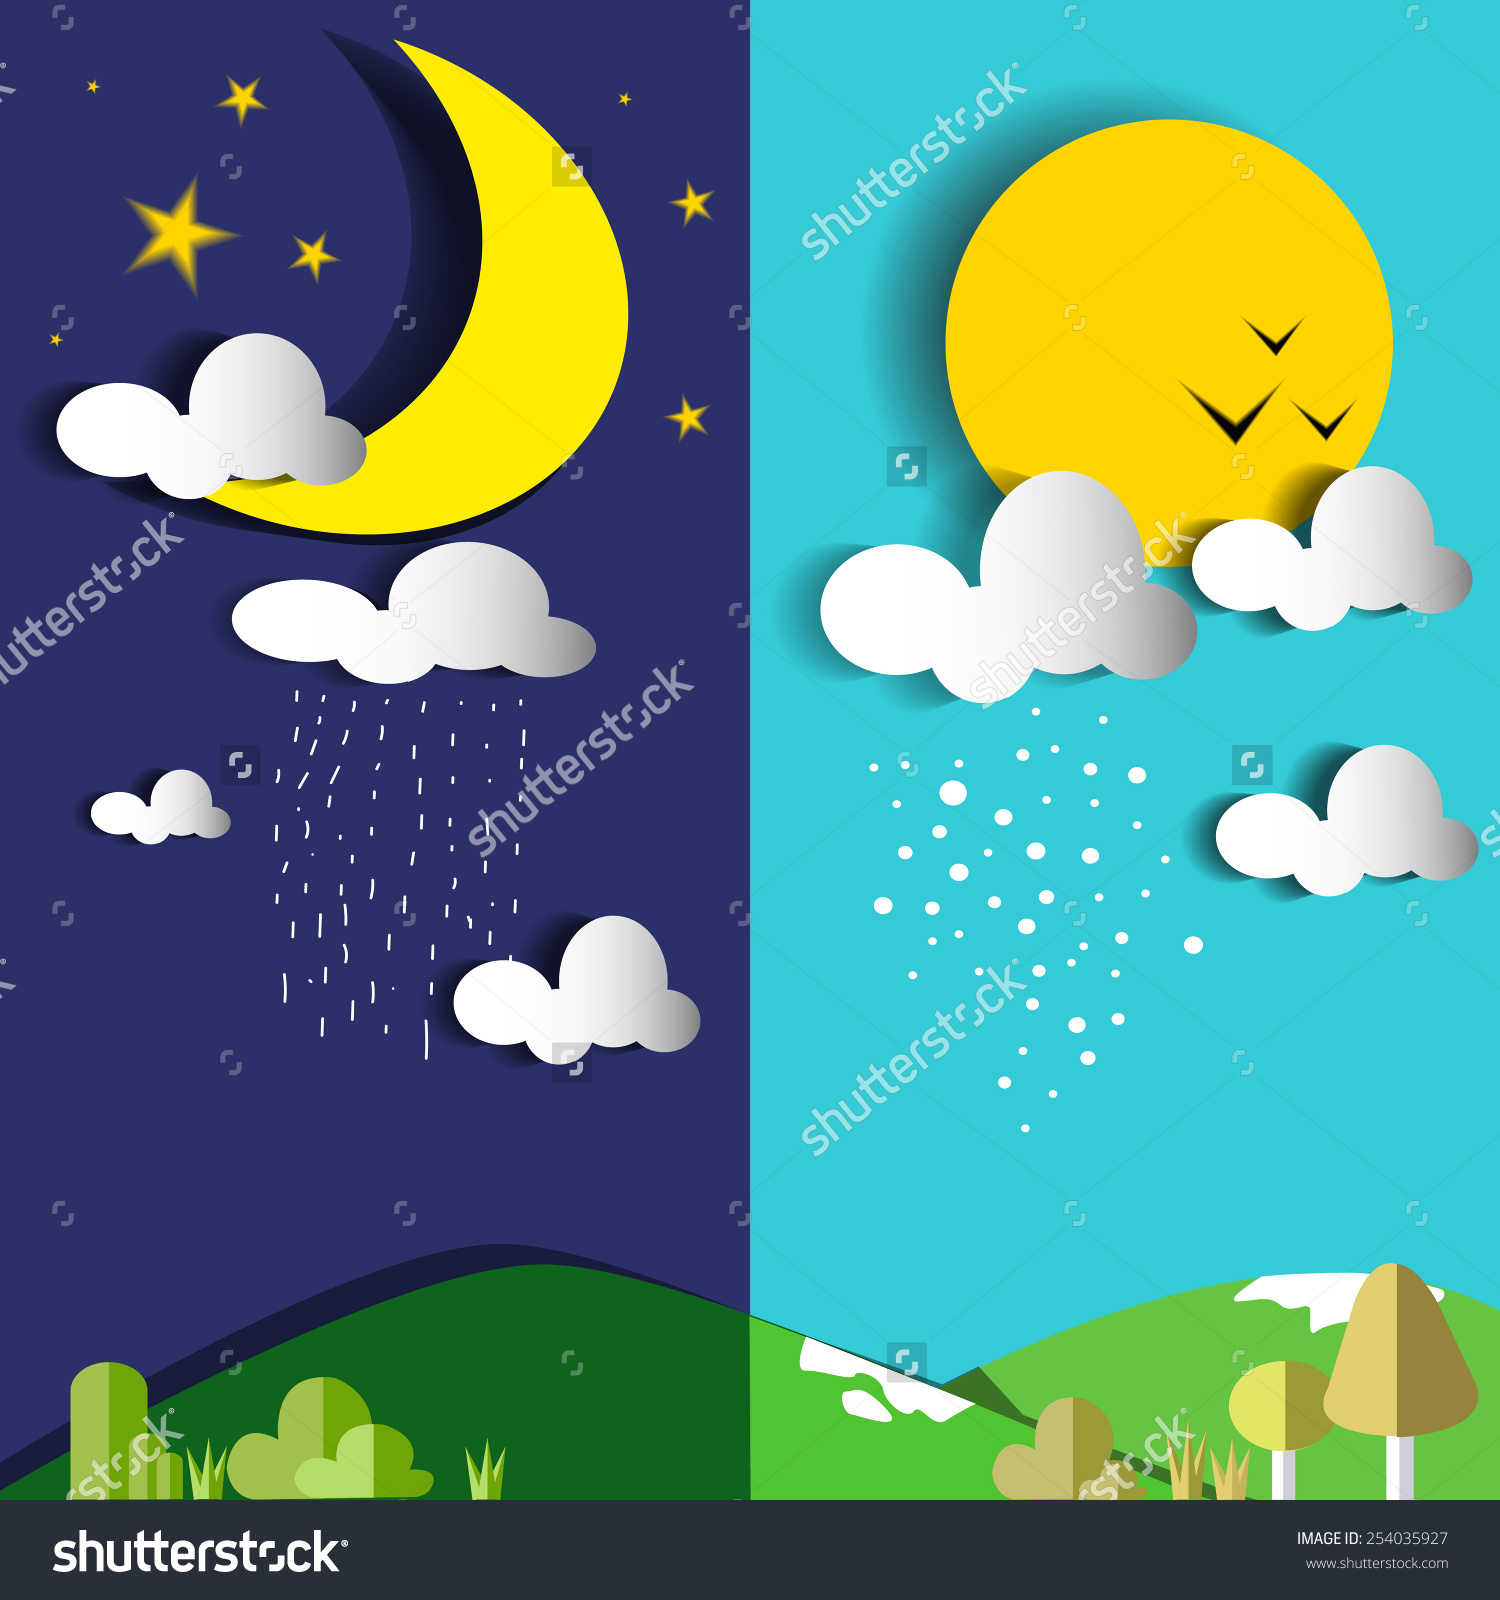 Day to night clipart.